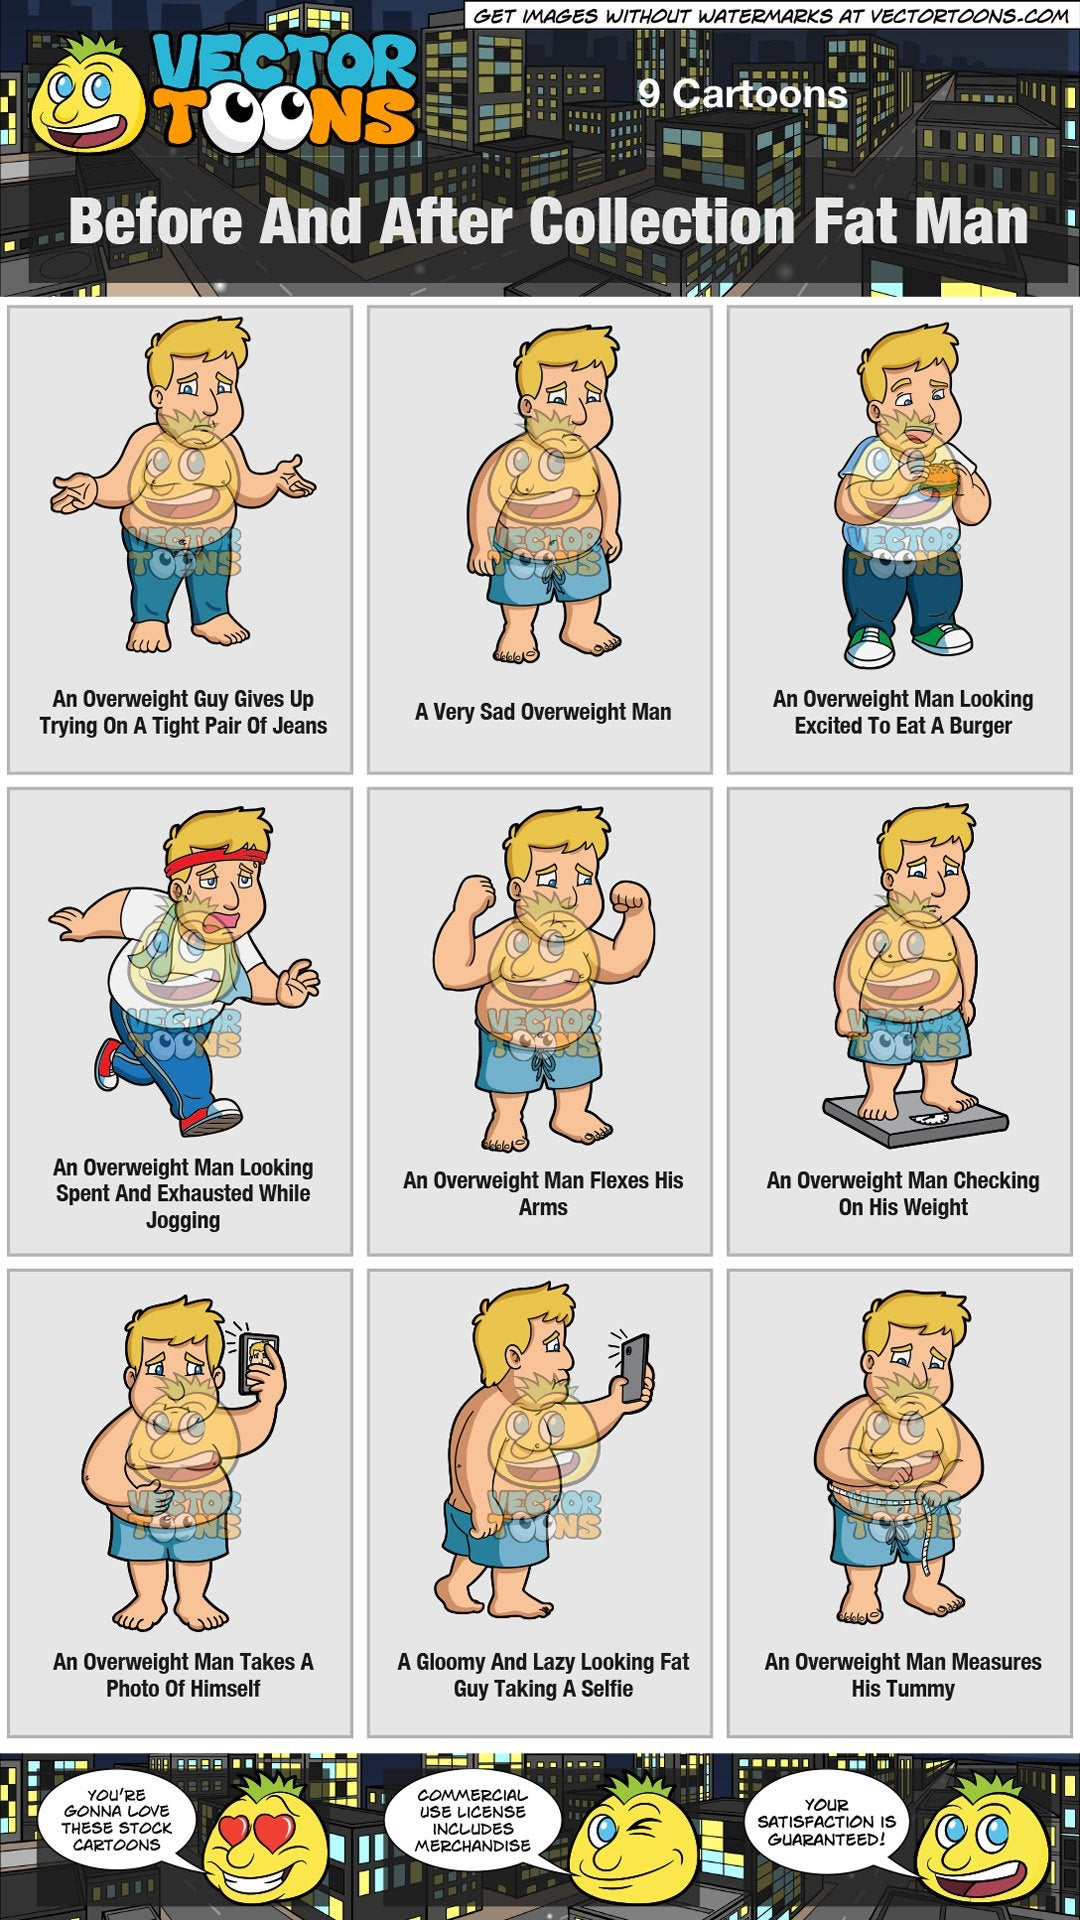 Before And After Collection Fat Man